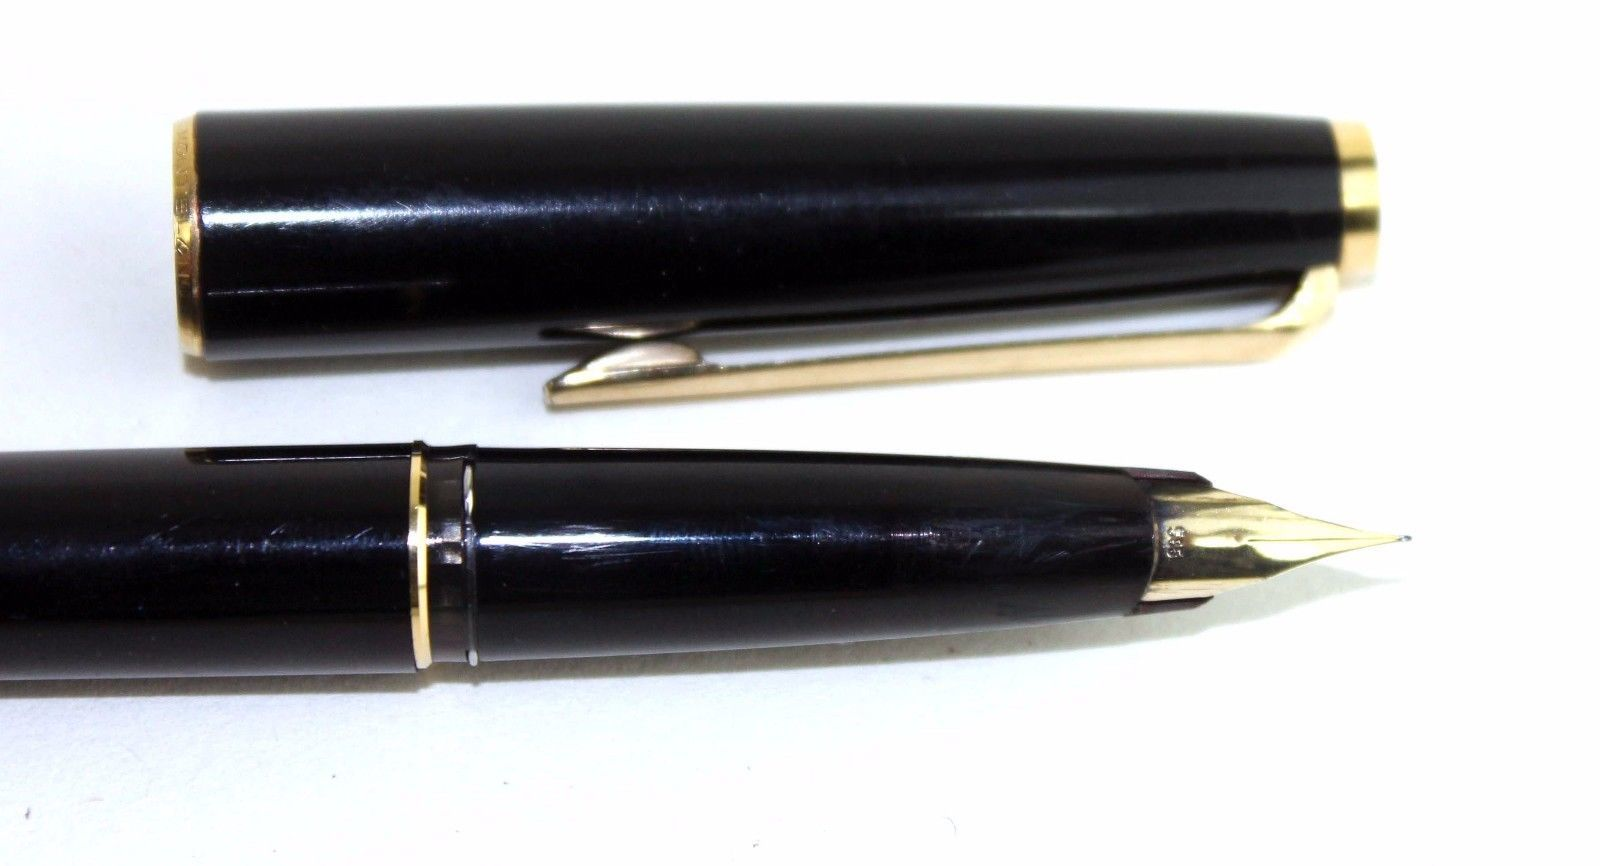 100% authentic Montblanc Fountain Pen 116075 Unicef  Meisterstuck Classique 585